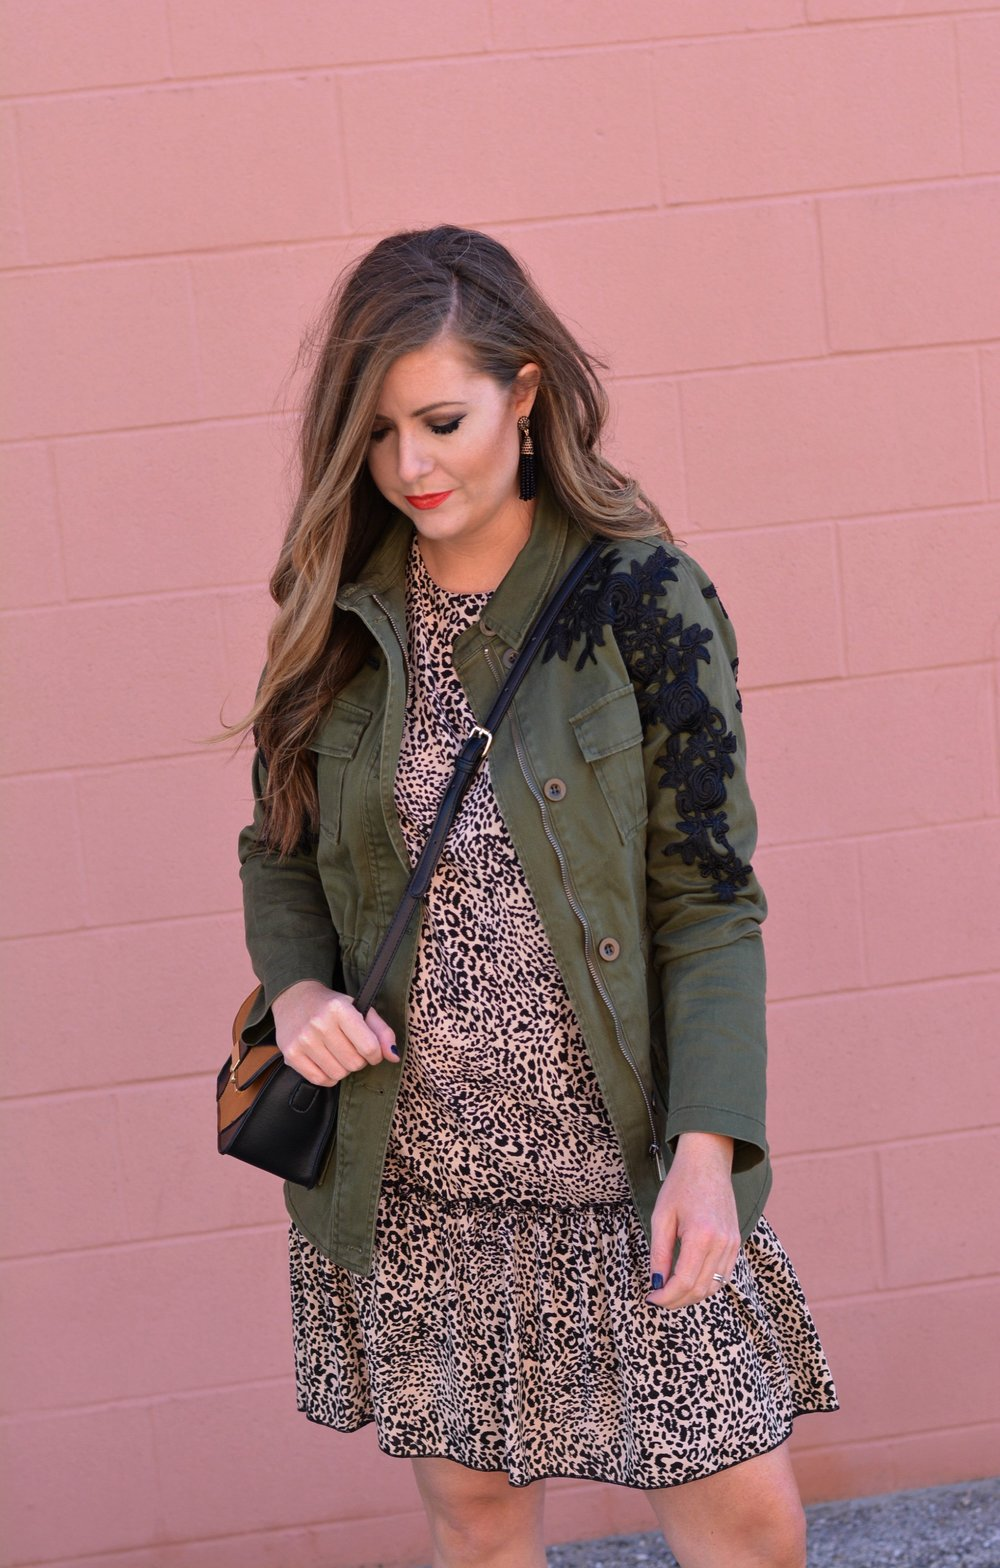 Green cargo jacket with a leopard dress for fall